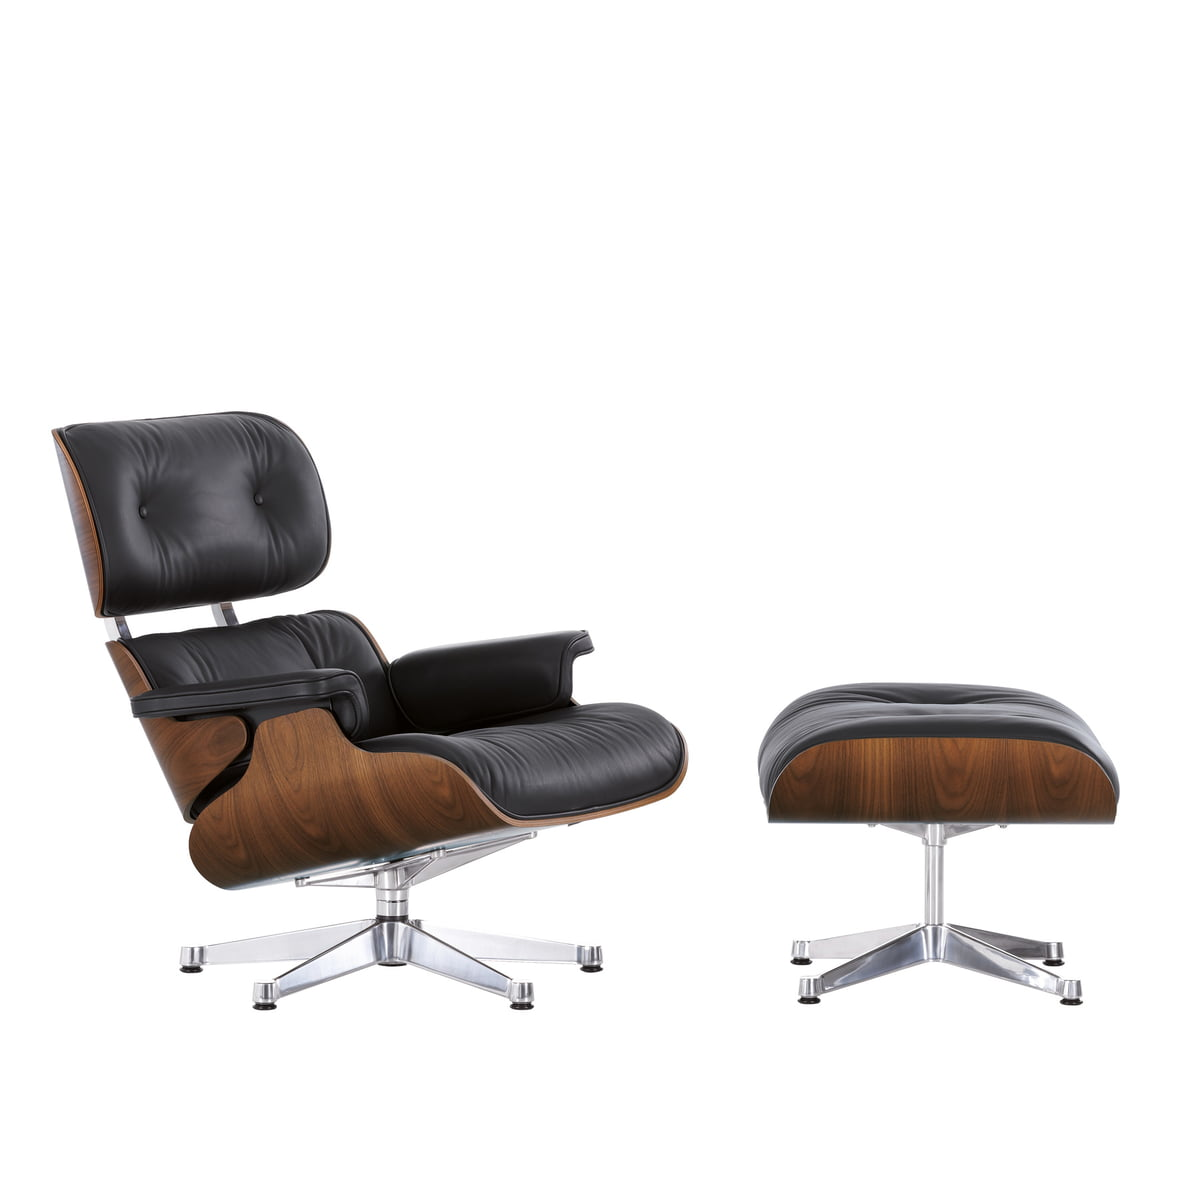 Vitra Lounge Chair Ottoman In Walnut Chrome Plated